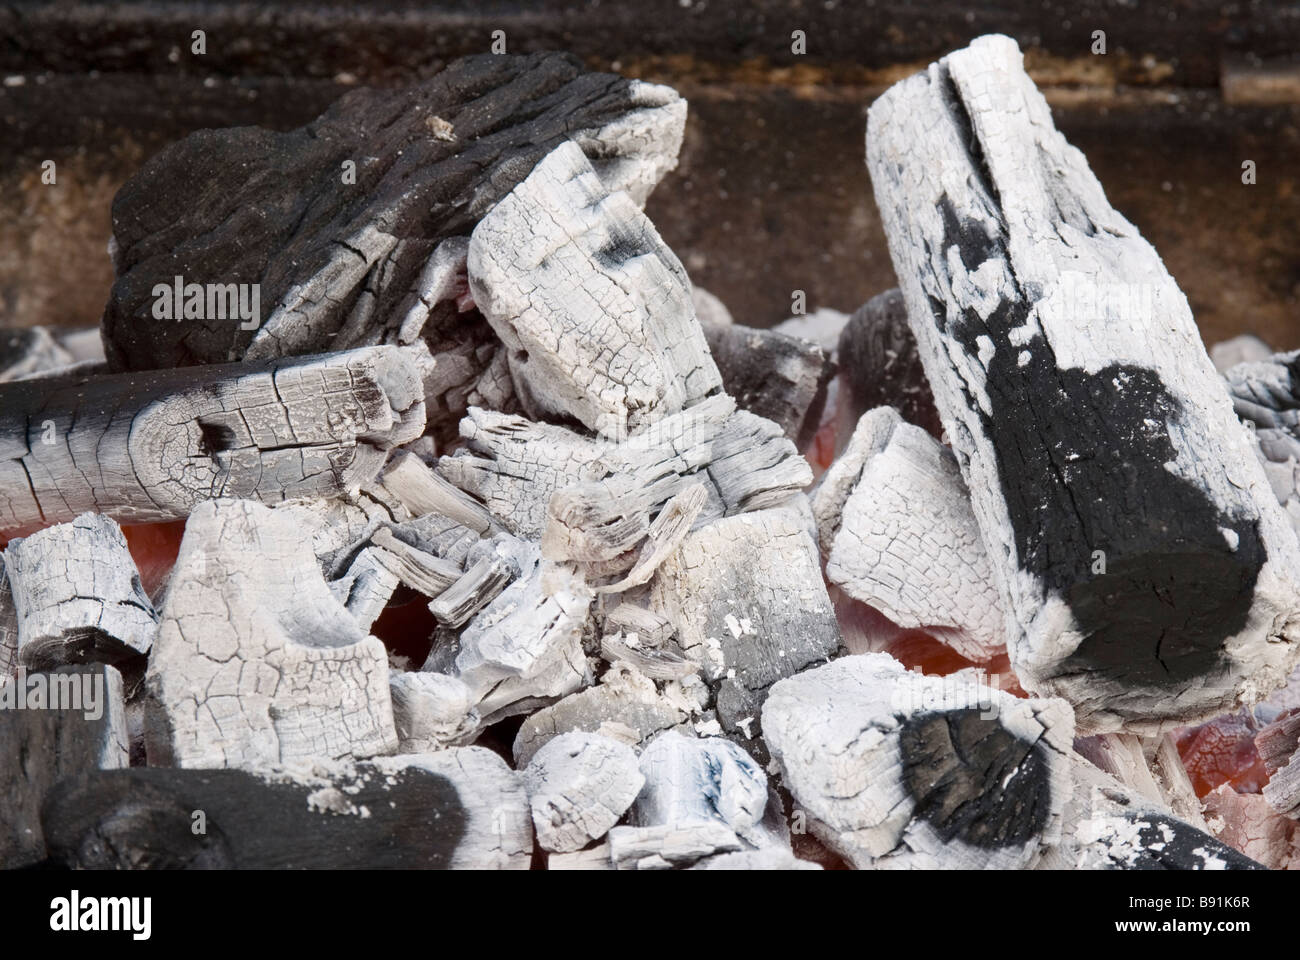 Wood coal burned on barbecue - Stock Image